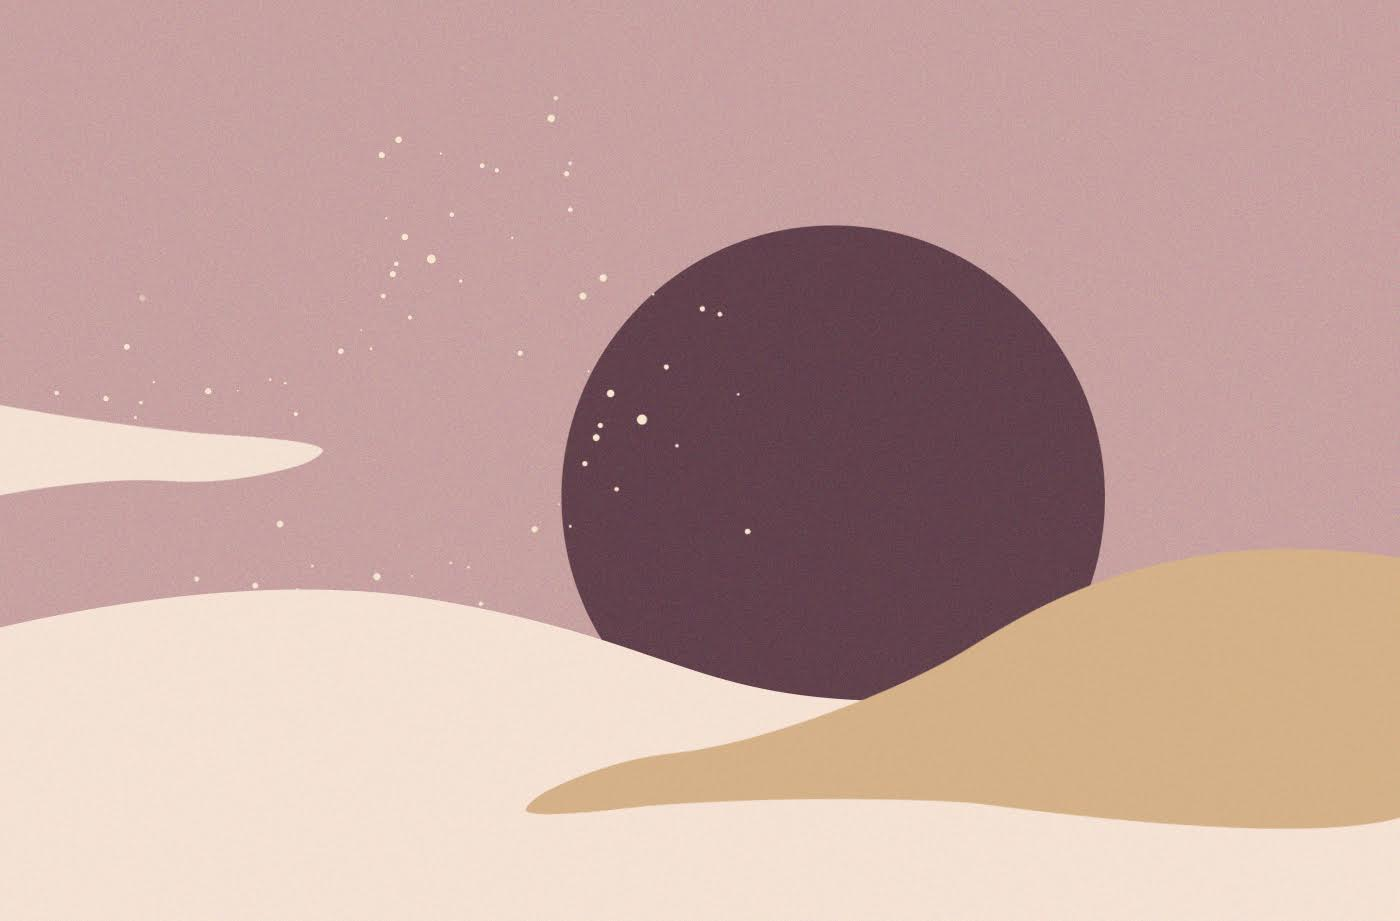 Thumbnail for There Are 4 Supermoons This Year—Here's What Each Means for Your Sign